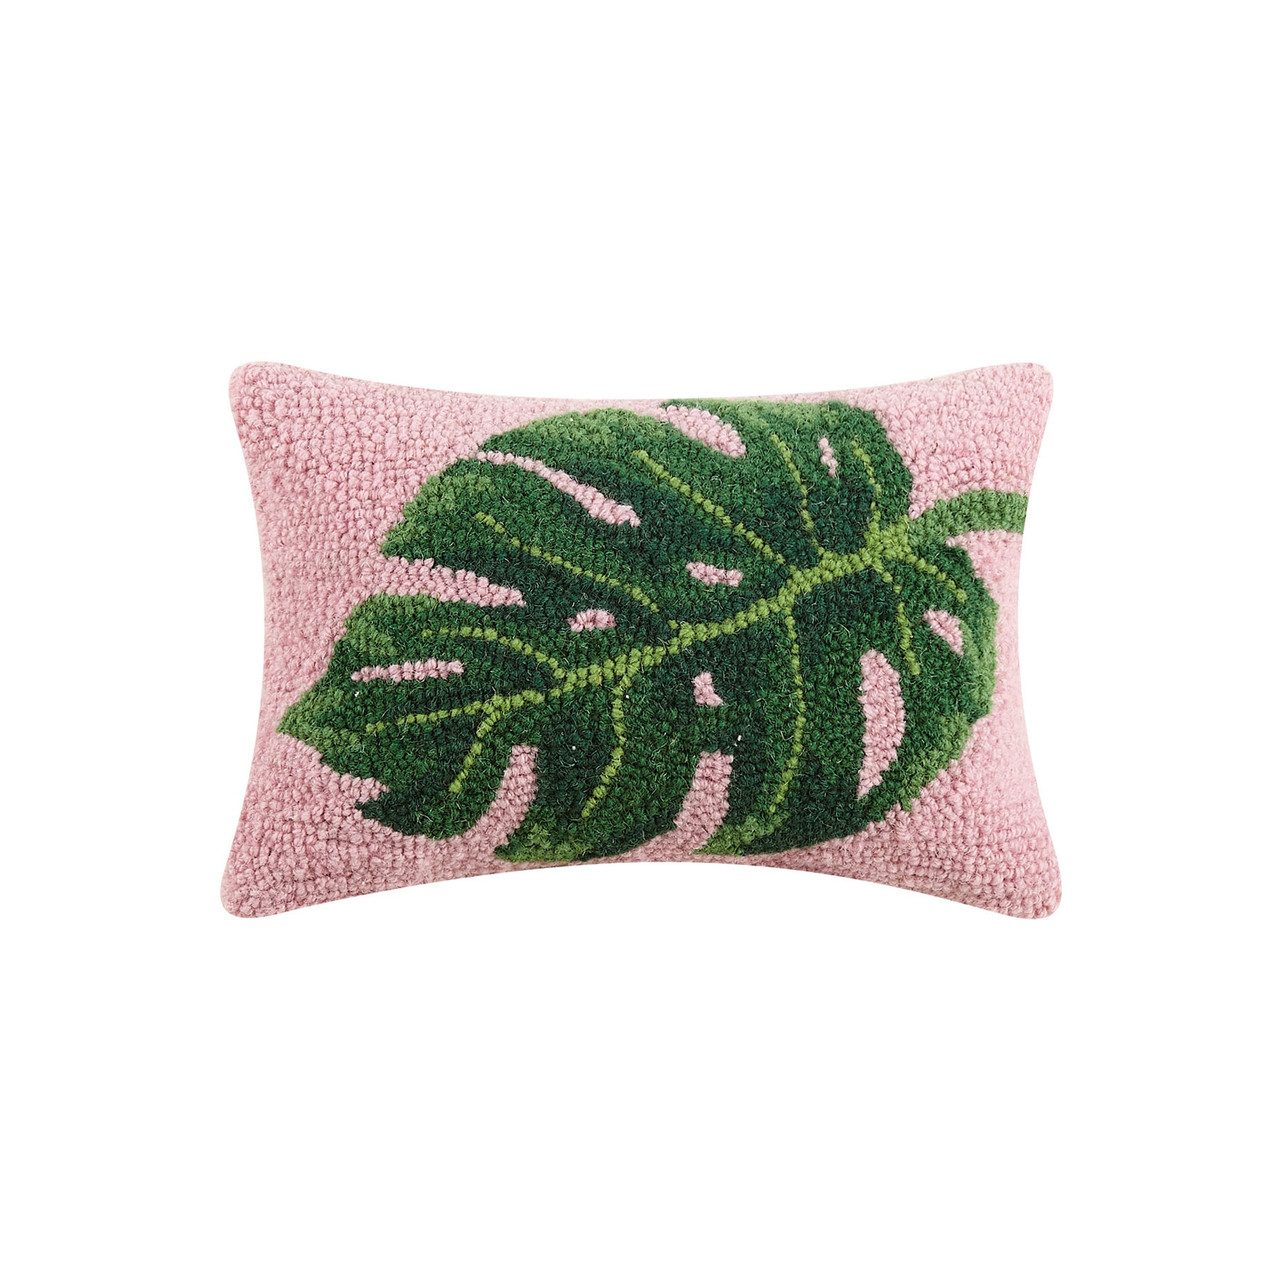 Preorder Palm Leaf Pillow The Silver Oyster